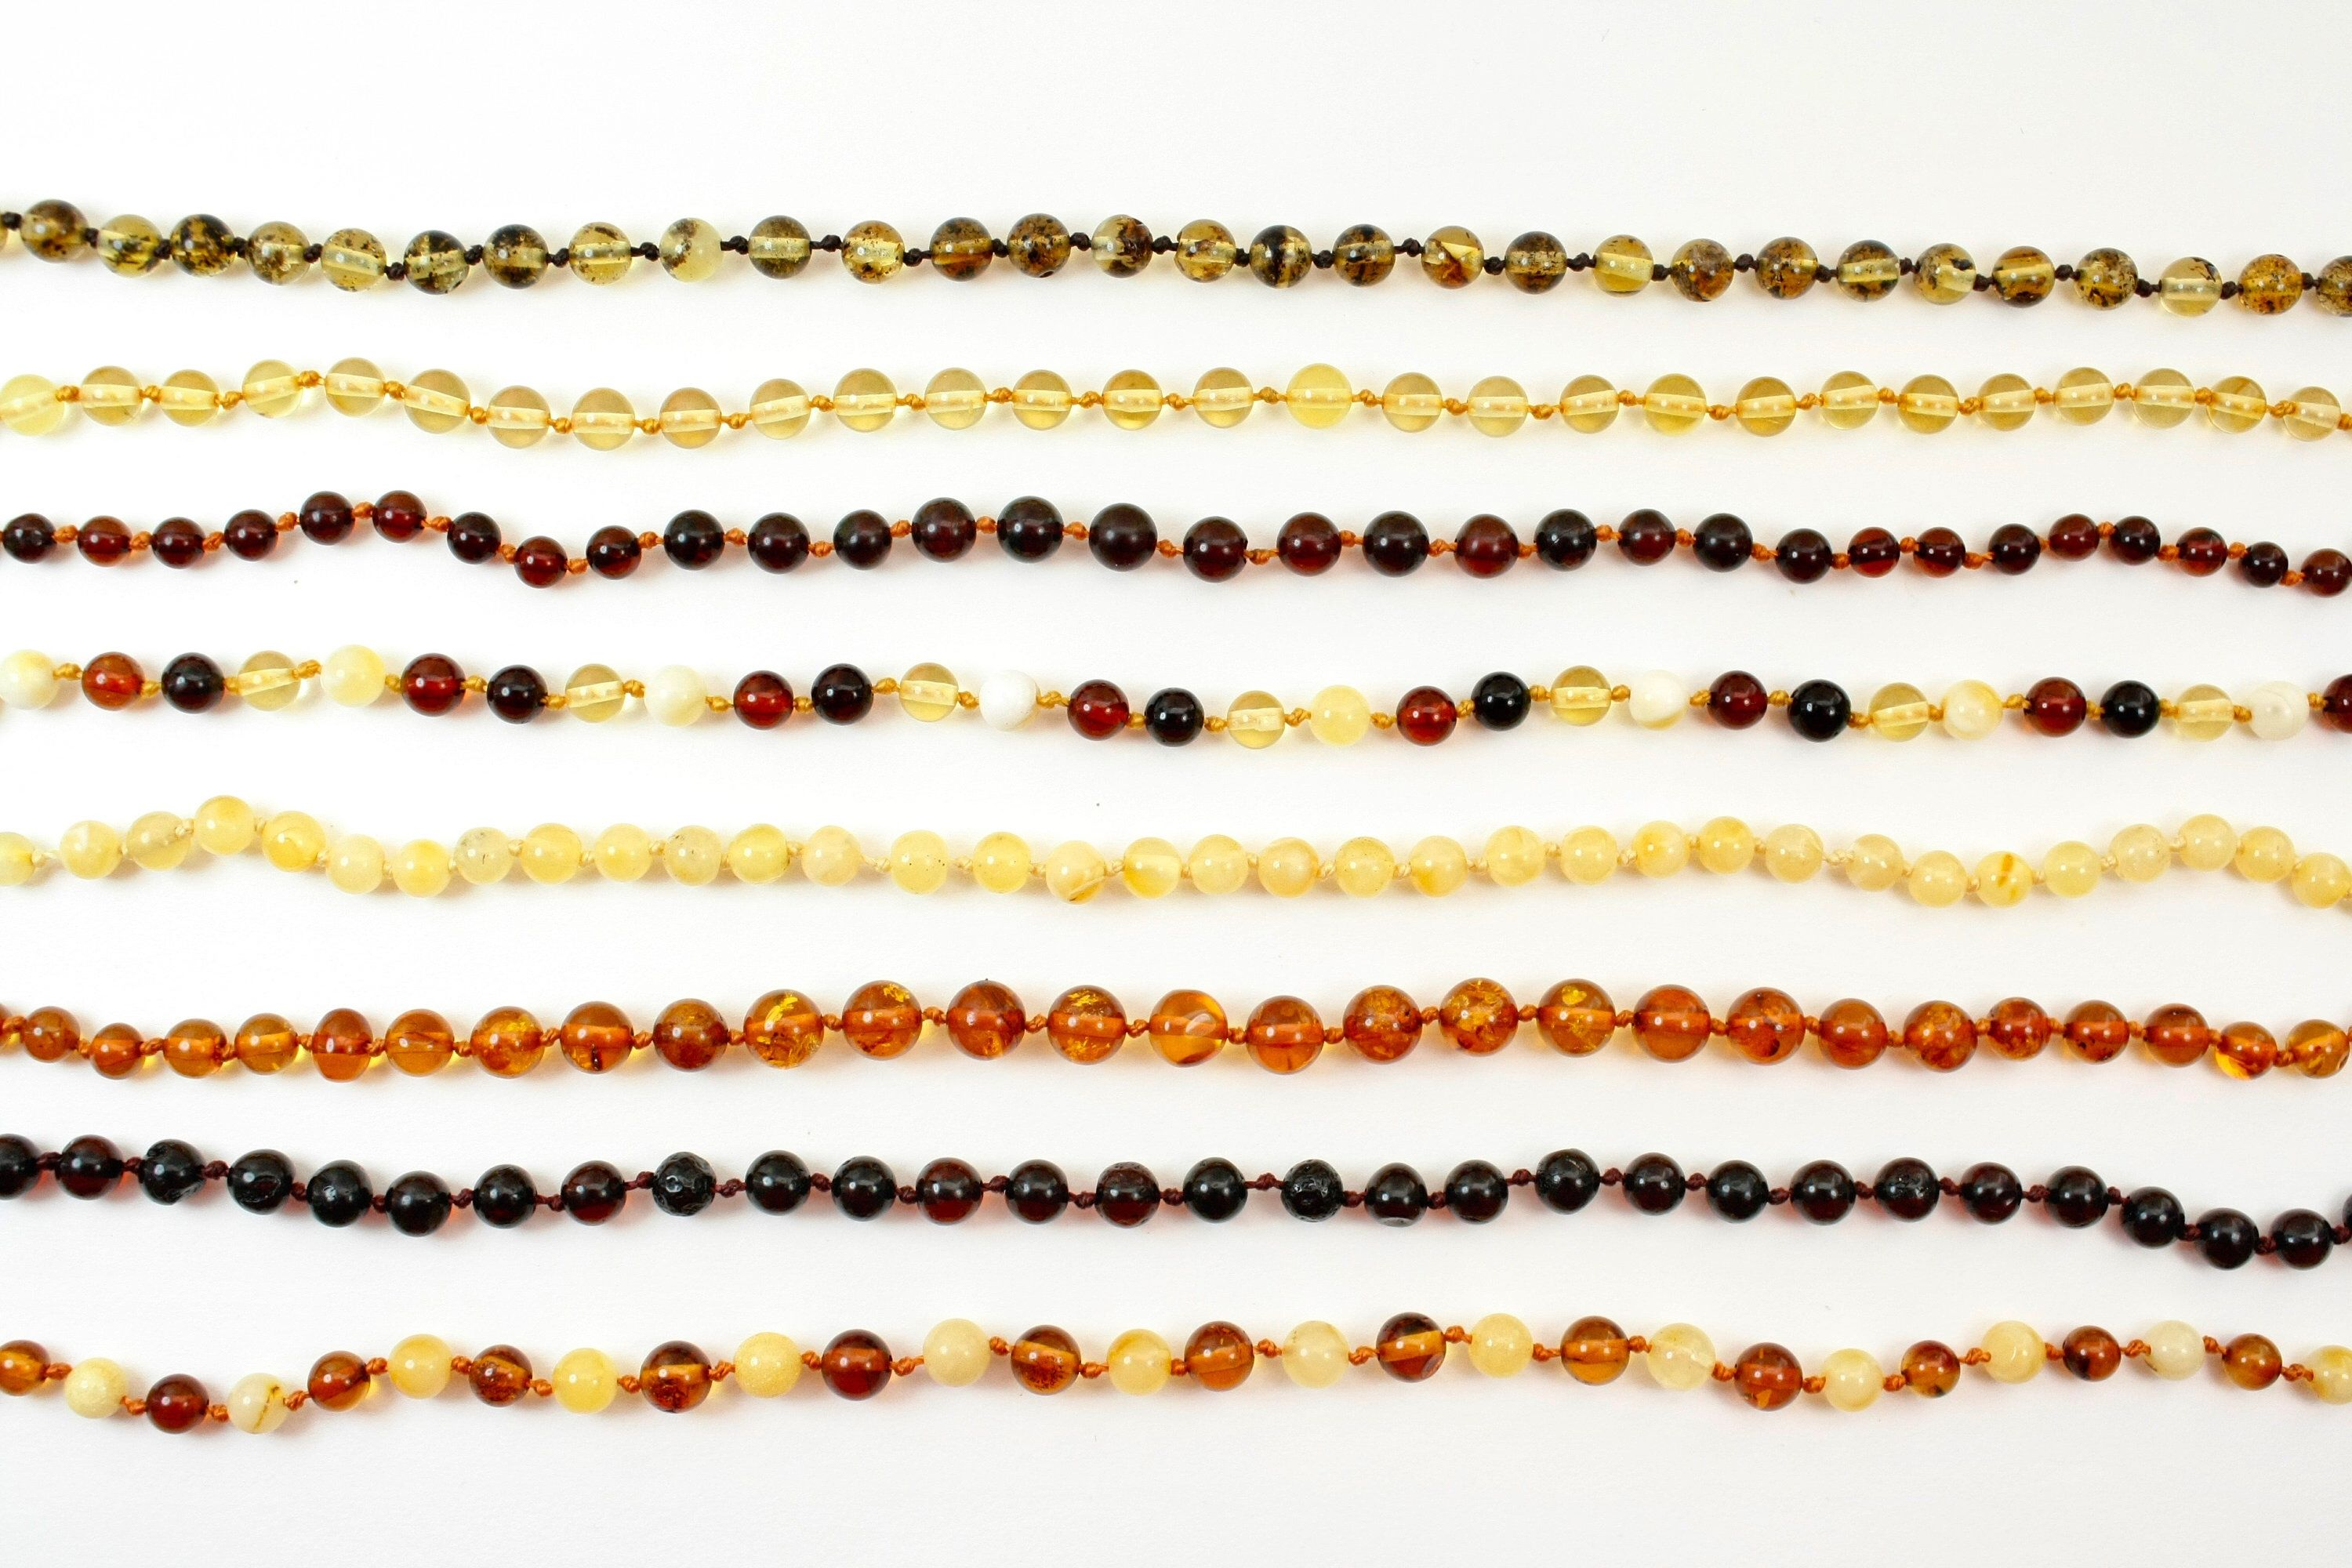 85b9d74ca8665 Premium class Round Baltic Amber Baby teething necklaces. Wholesale ...